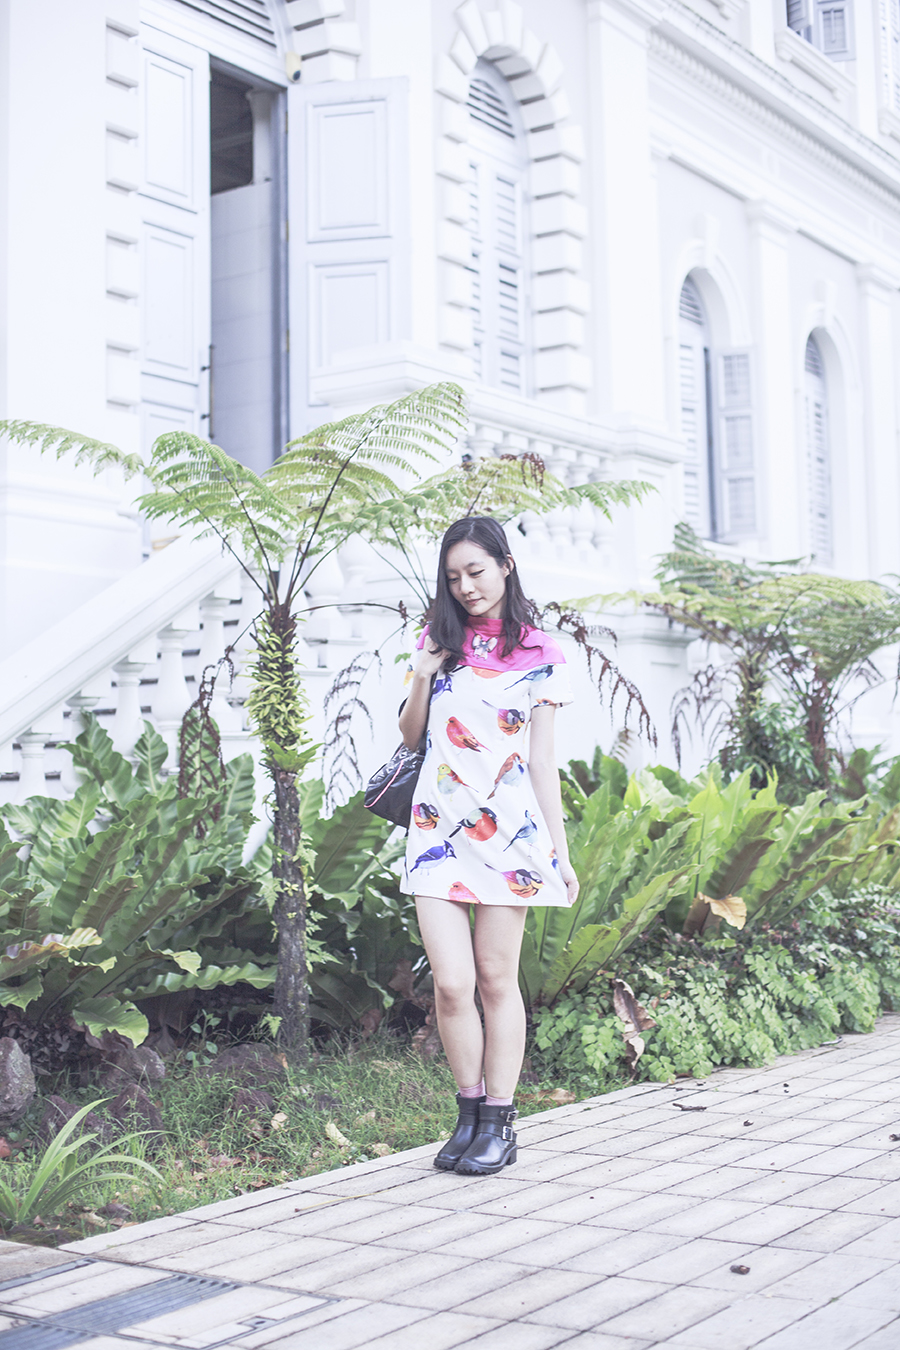 YRBFashion Asos pink birds dress, T-shirt & Jeans backpack, Dav black rubber rain boots, La Marelle pink bow necklace.